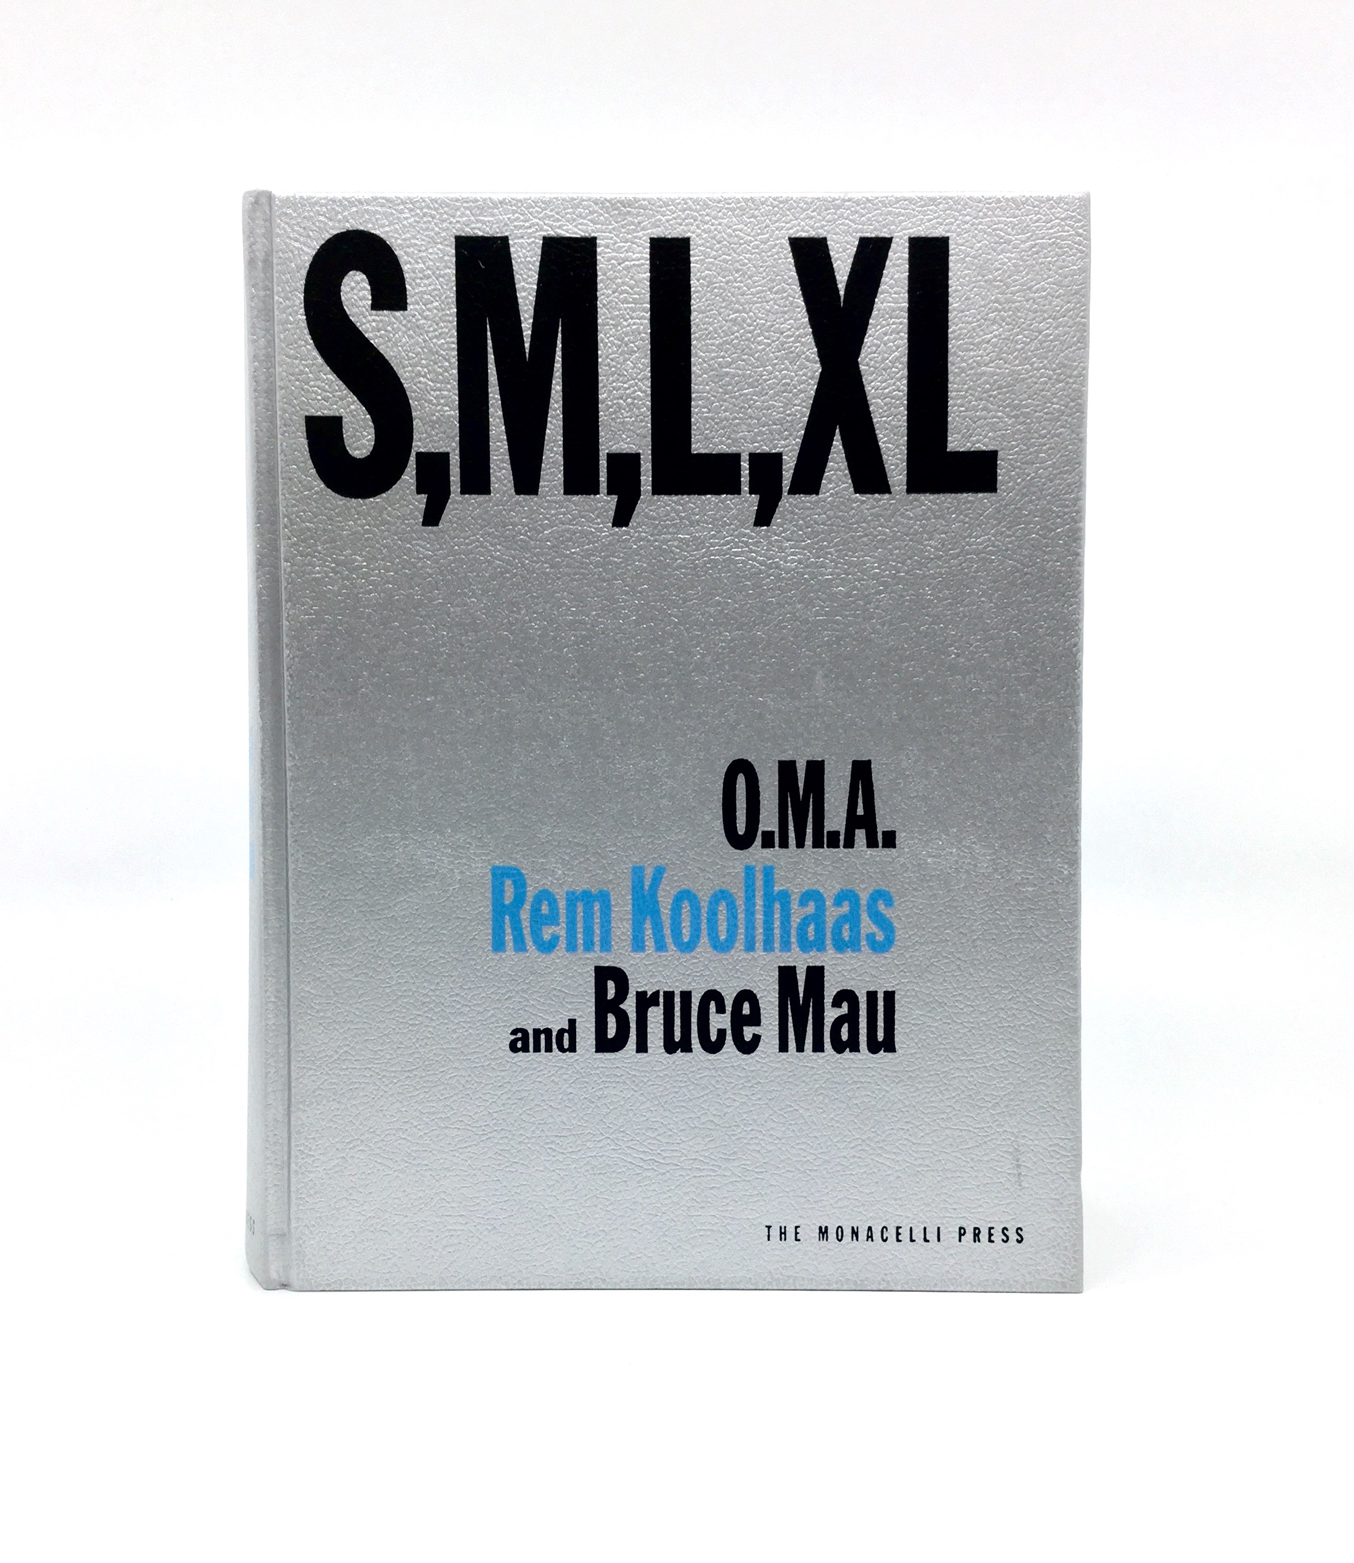 O.M.A. Rem Koolhaas and Bruce Mau - S,M,L,XL - published by The Monacelli Press